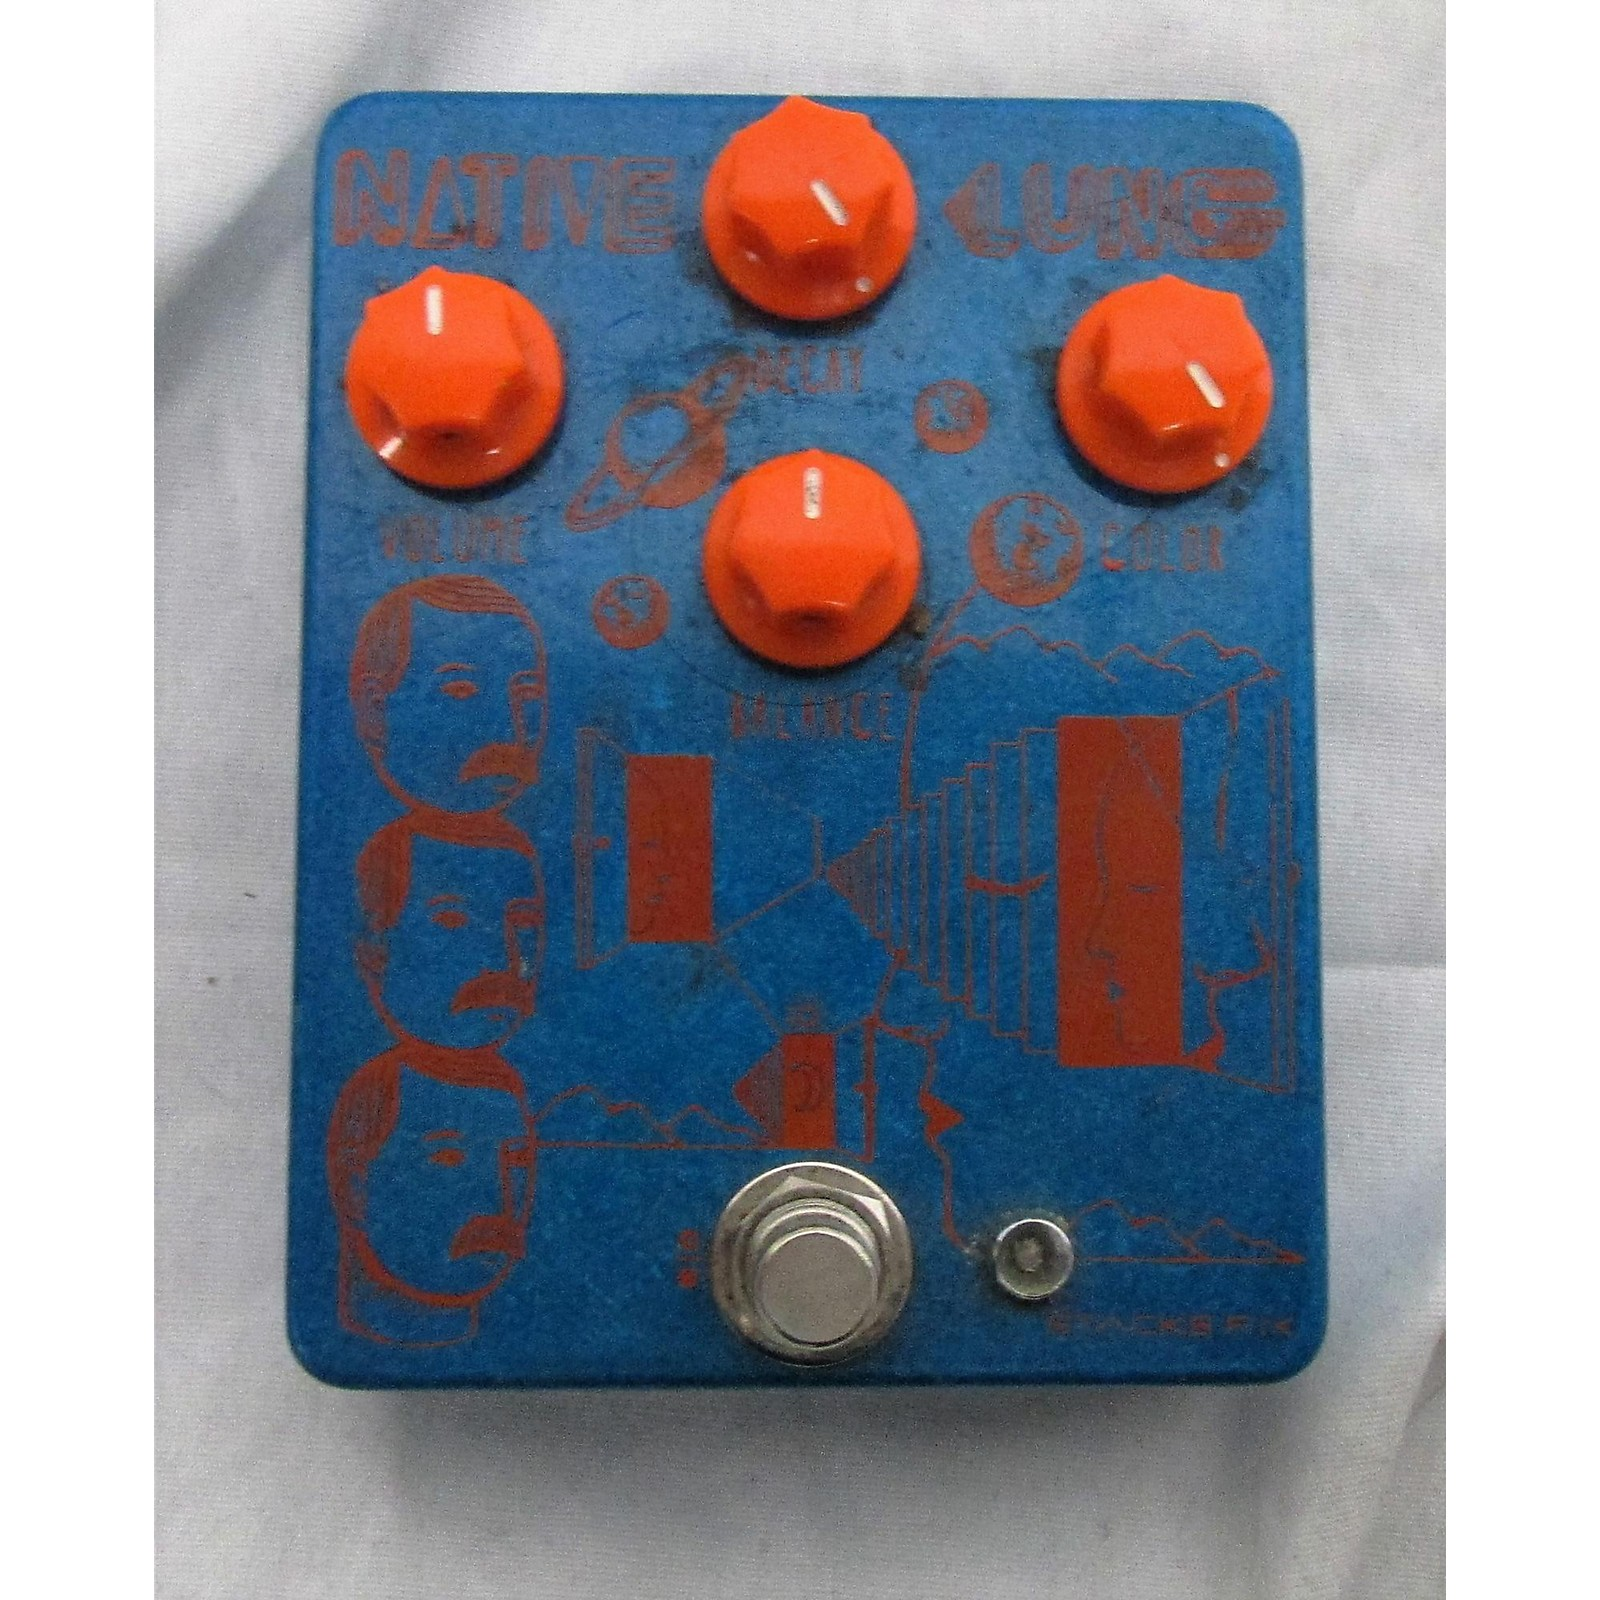 In Store Used Used Stacks Native Lung Effect Pedal